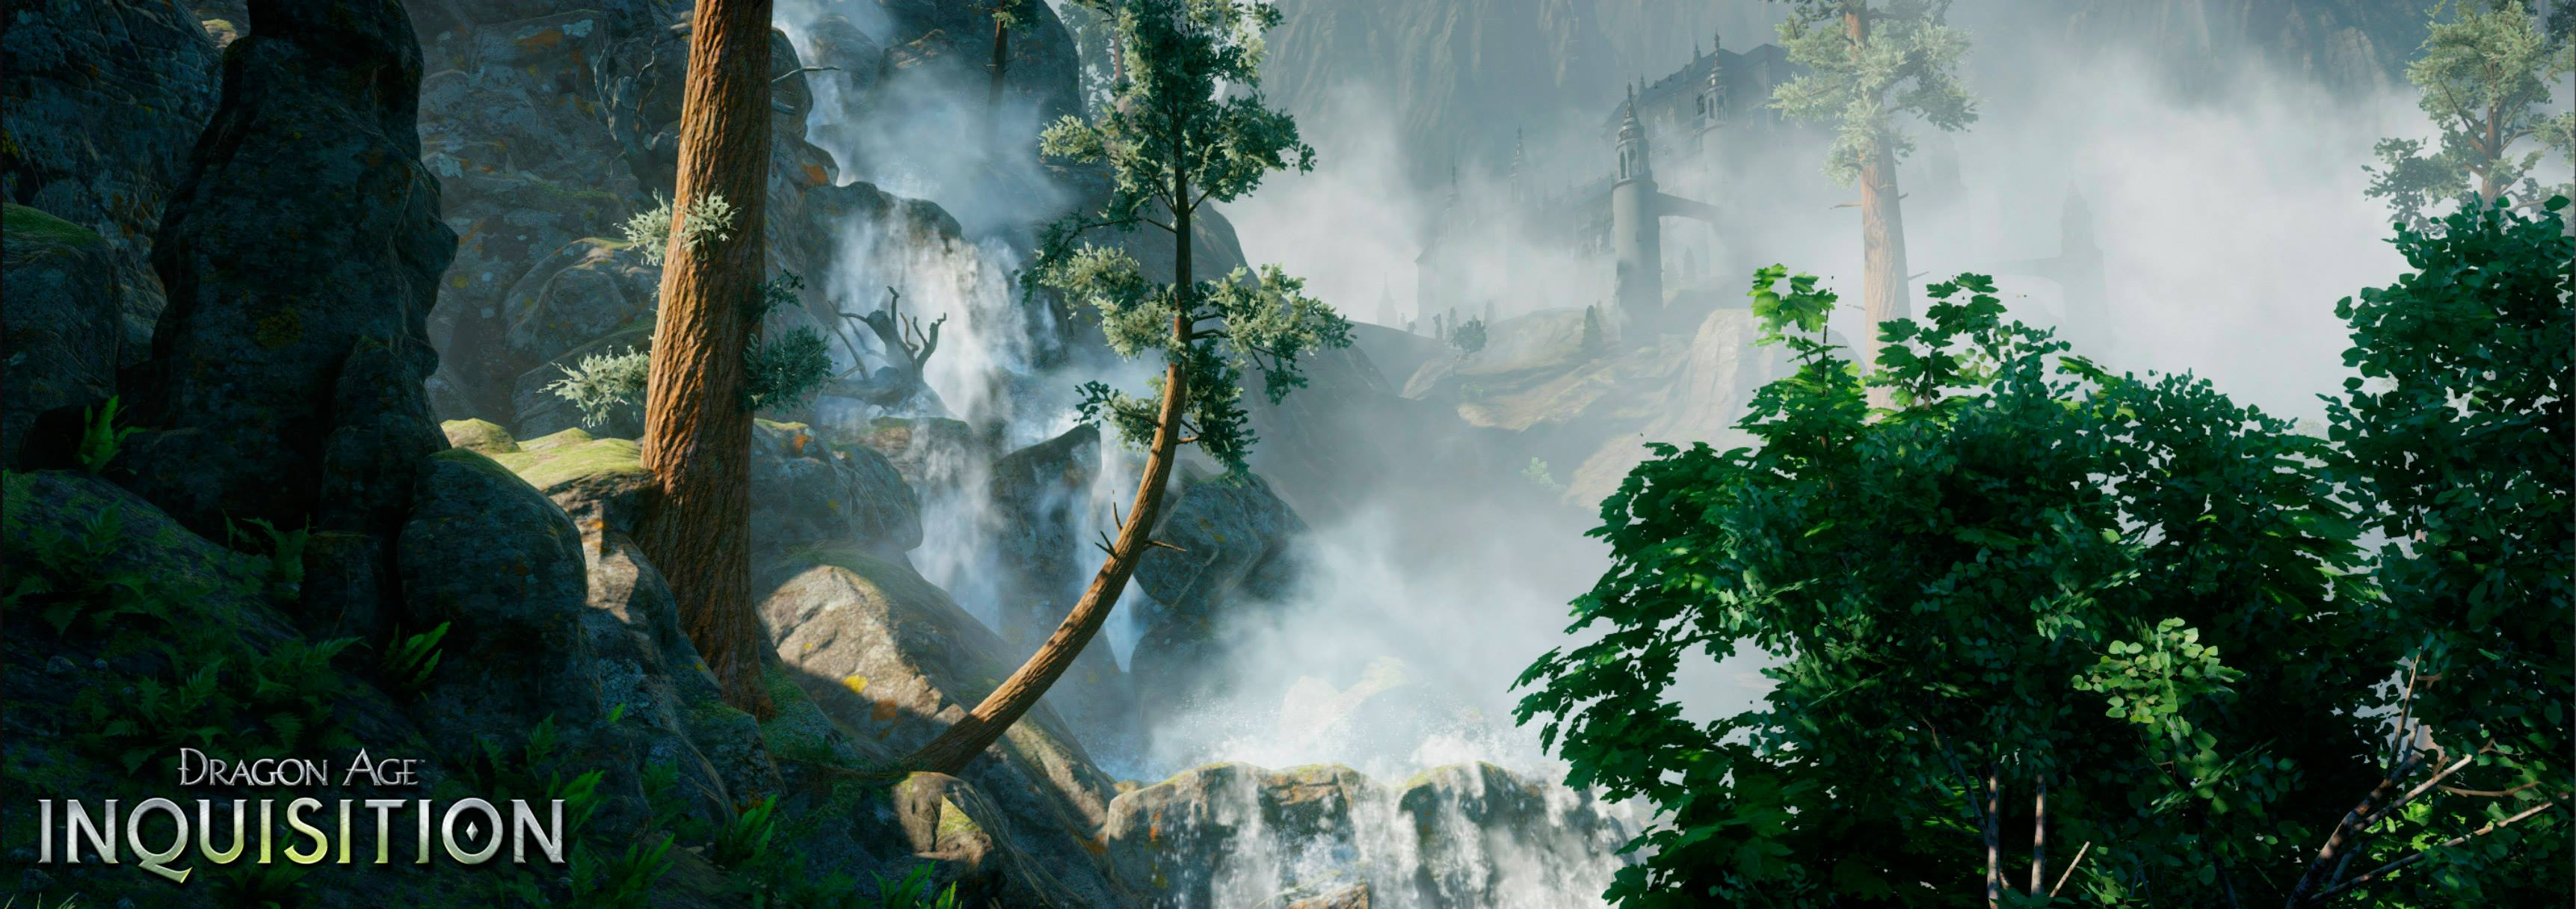 Dragon Age Inquisition The Emerald Graves 1205 2